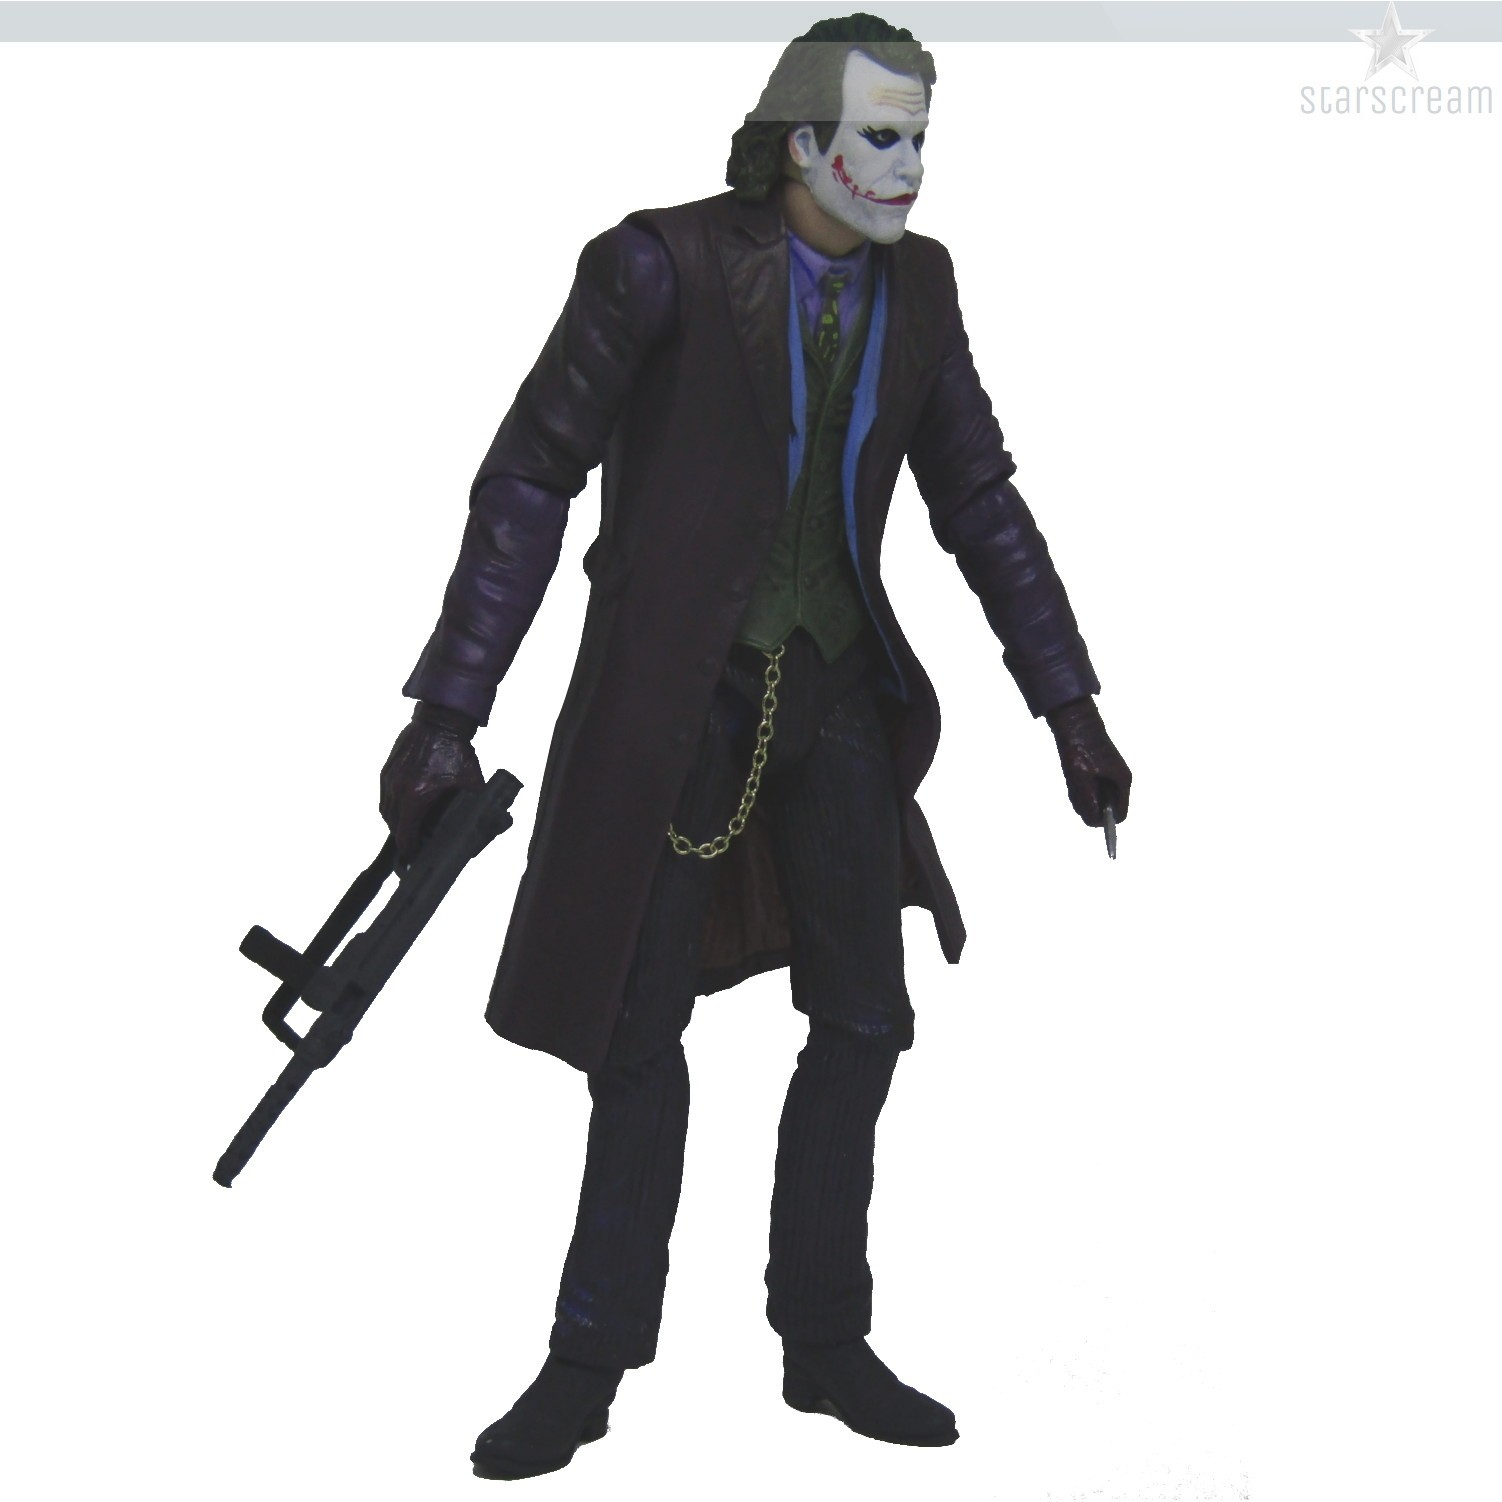 Joker - The Dark Knight - 7""